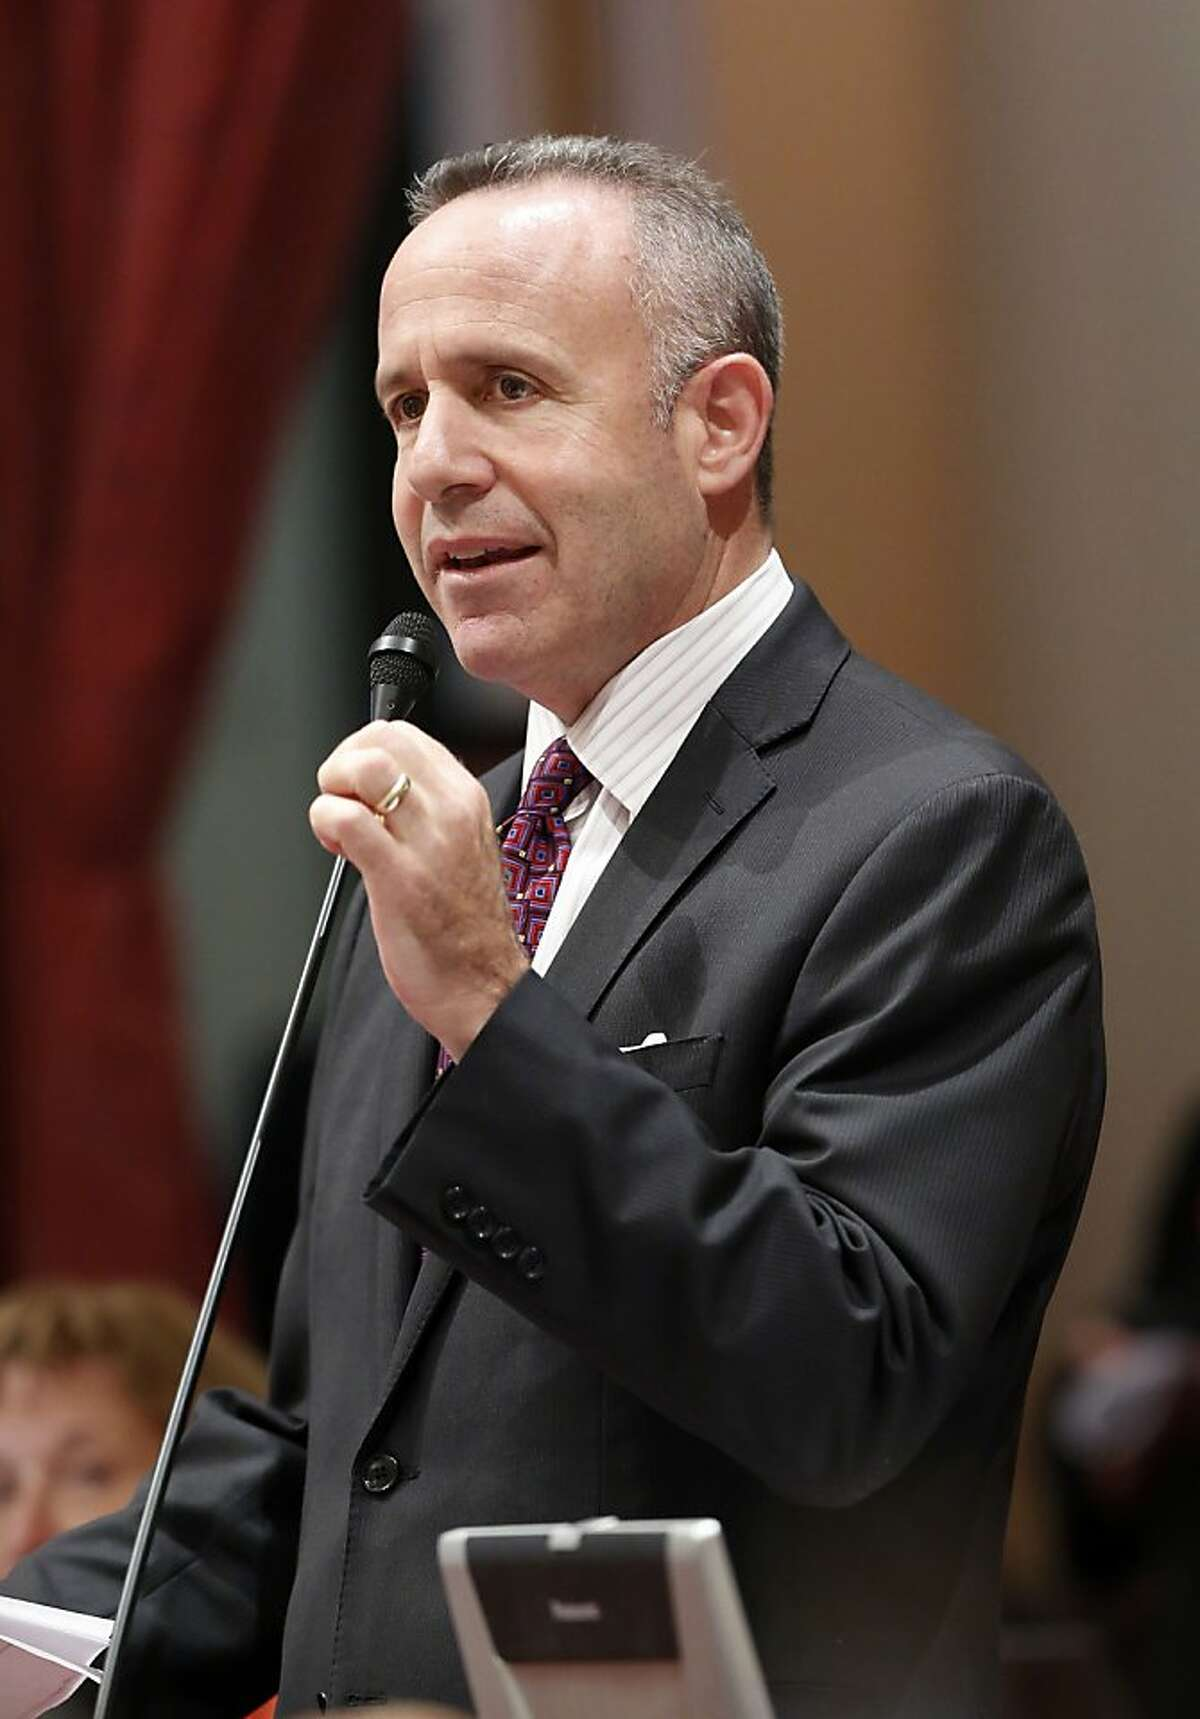 State Senate President Pro Tem Darrell Steinberg, D-Sacramento, urges lawmakers to approve a compromise plan to deal with the state's prison overcrowding, at the Capitol in Sacramento, Calif., Wednesday, Sept. 11, 2013. The bill, SB105, a plan asking federal judges to extend the deadline for releasing thousands of inmates, combined with Gov. Jerry Brown's plan to lease cells in private prisons and county jails if the court sticks to its year-end deadline to reduce the inmate population, was approved 35-2 and now goes to the governor. (AP Photo/Rich Pedroncelli)